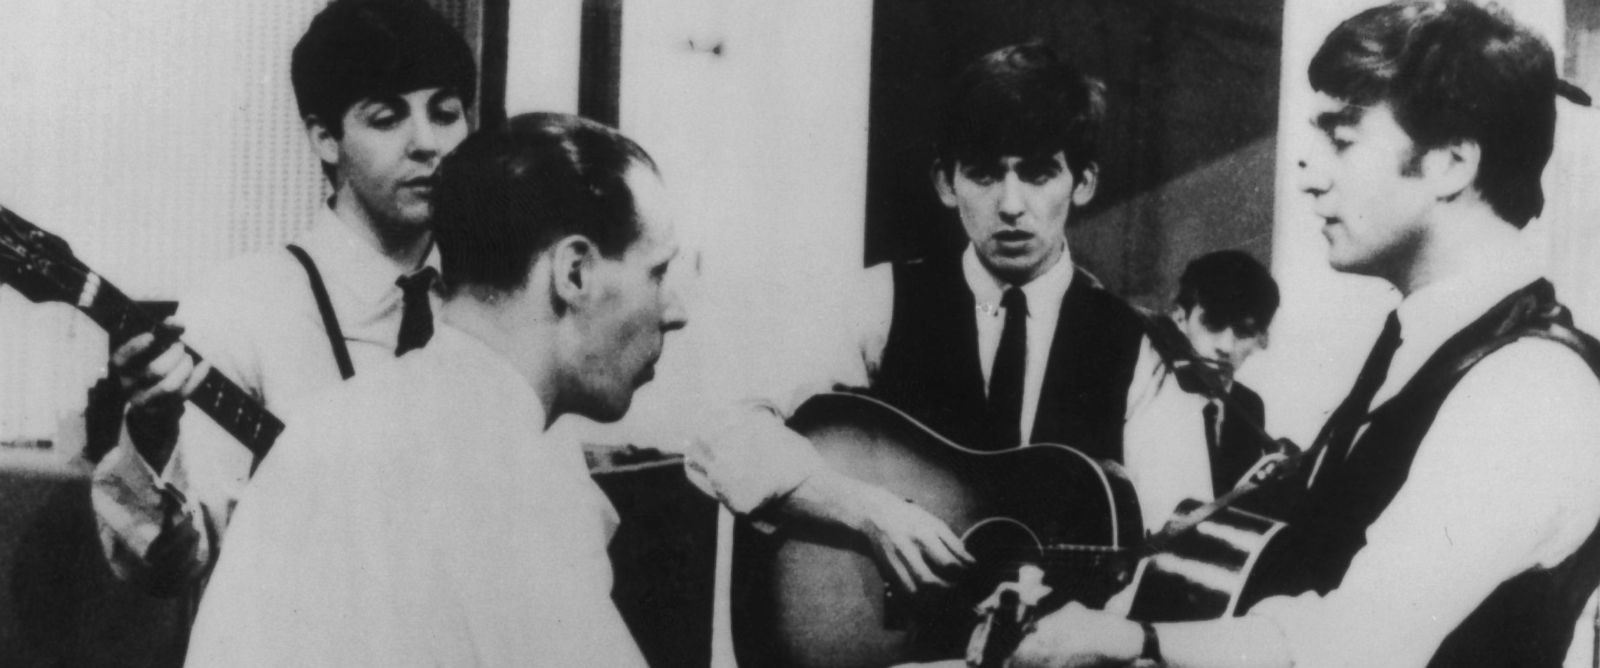 PHOTO:The Beatles at a recording session for the Parlophone label with their producer George Martin, circa 1963.